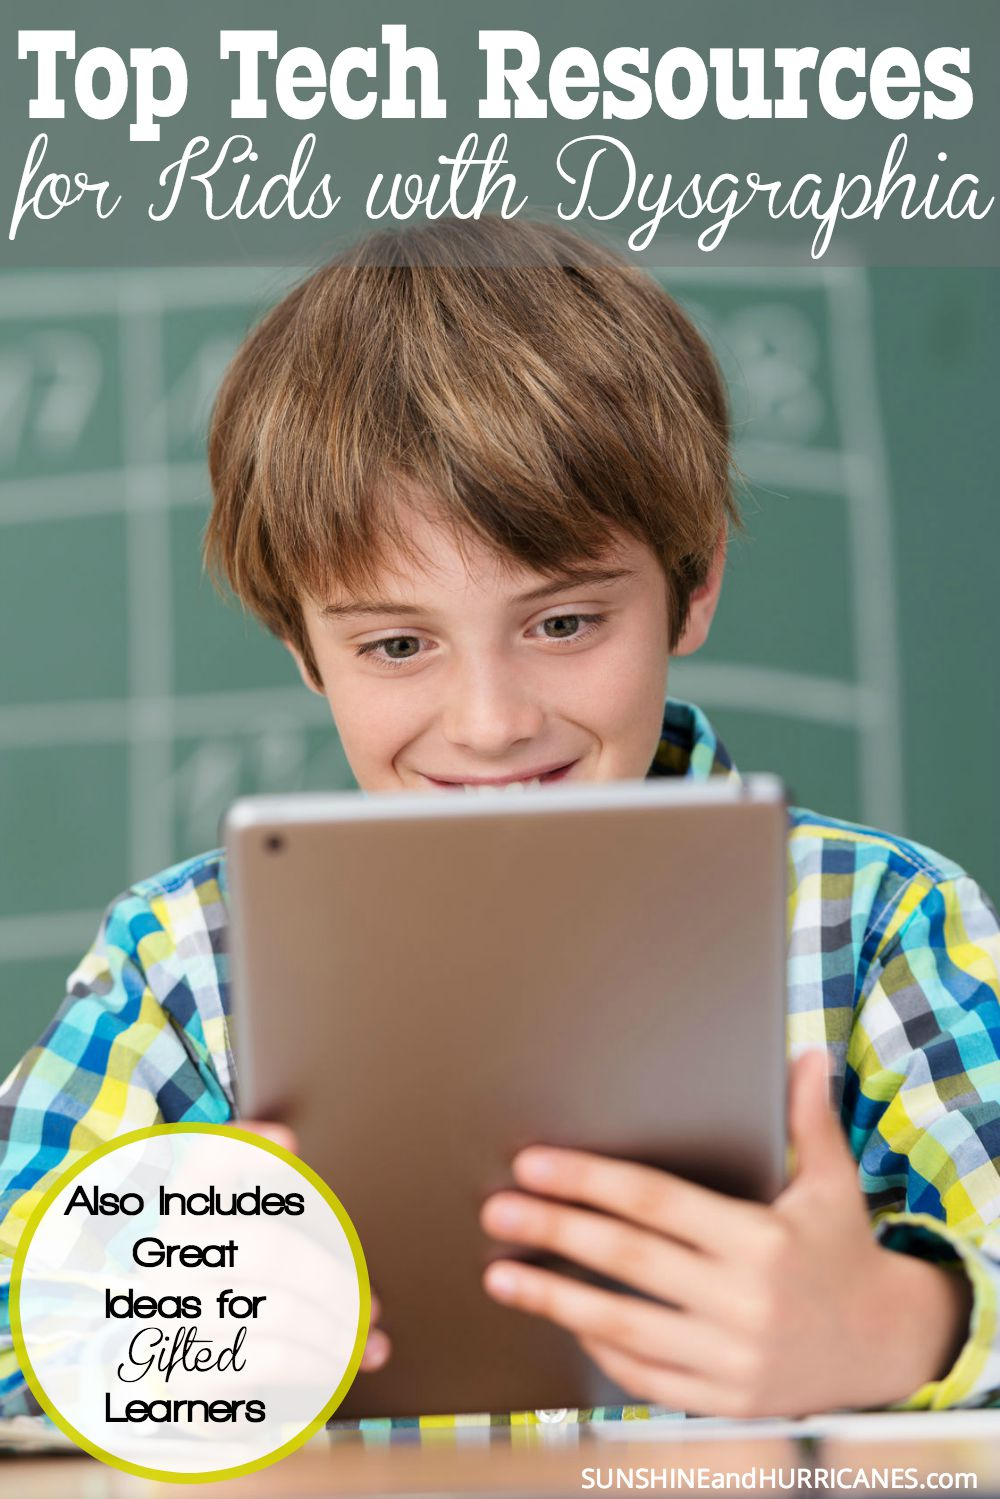 top homework help From atlases to study guides, these recommended websites will help students ace their assignments.